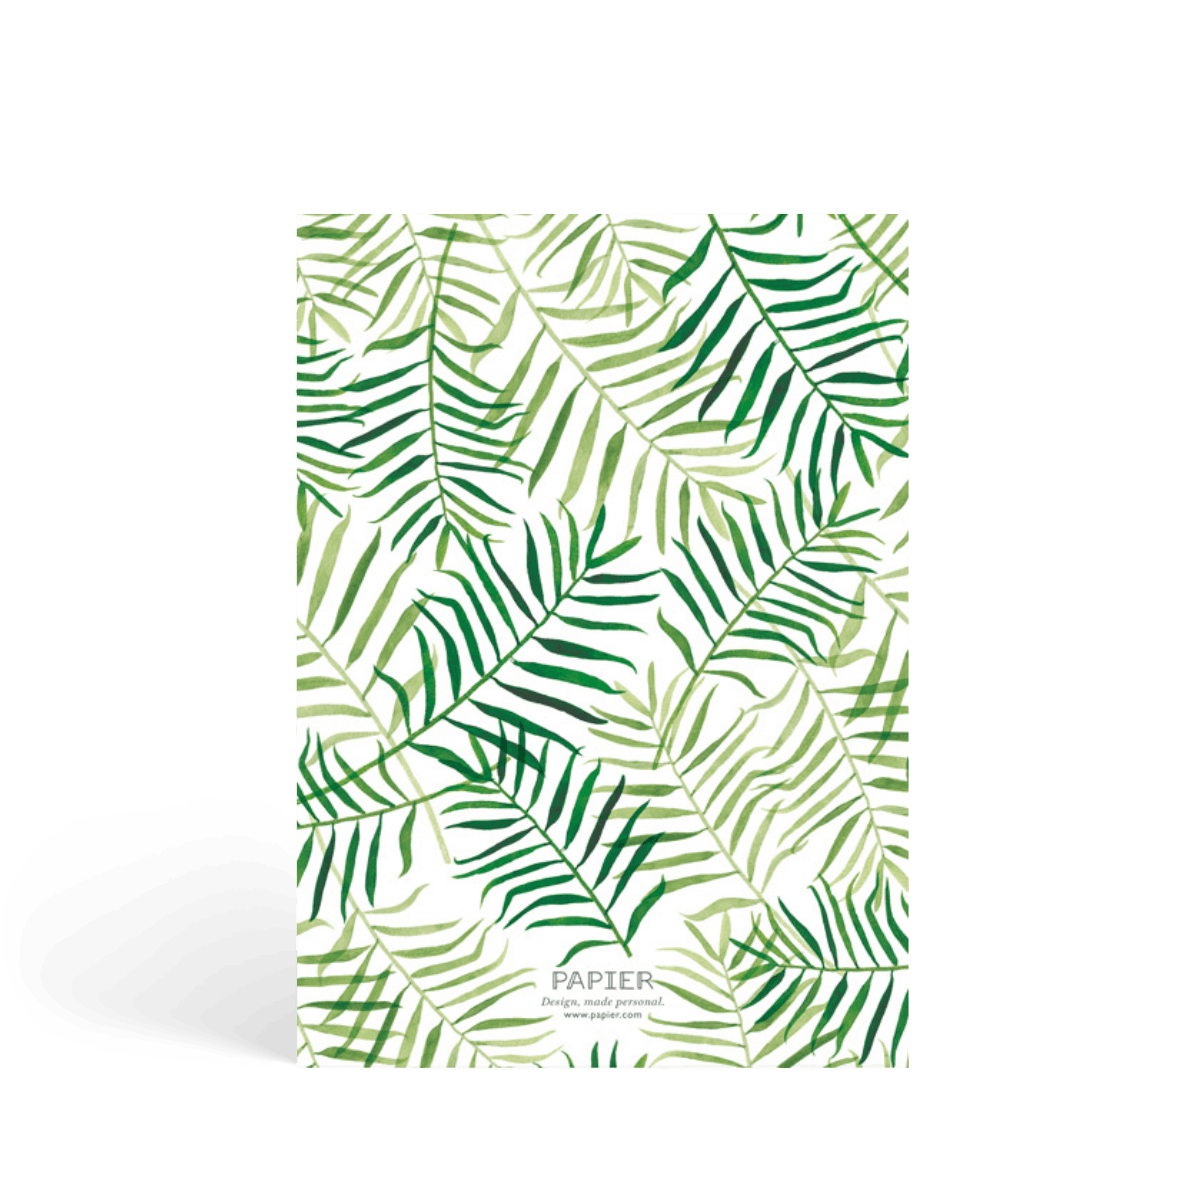 Https%3a%2f%2fwww.papier.com%2fproduct image%2f64711%2f5%2fpalm fronds 15216 rueckseite 1549030734.png?ixlib=rb 1.1